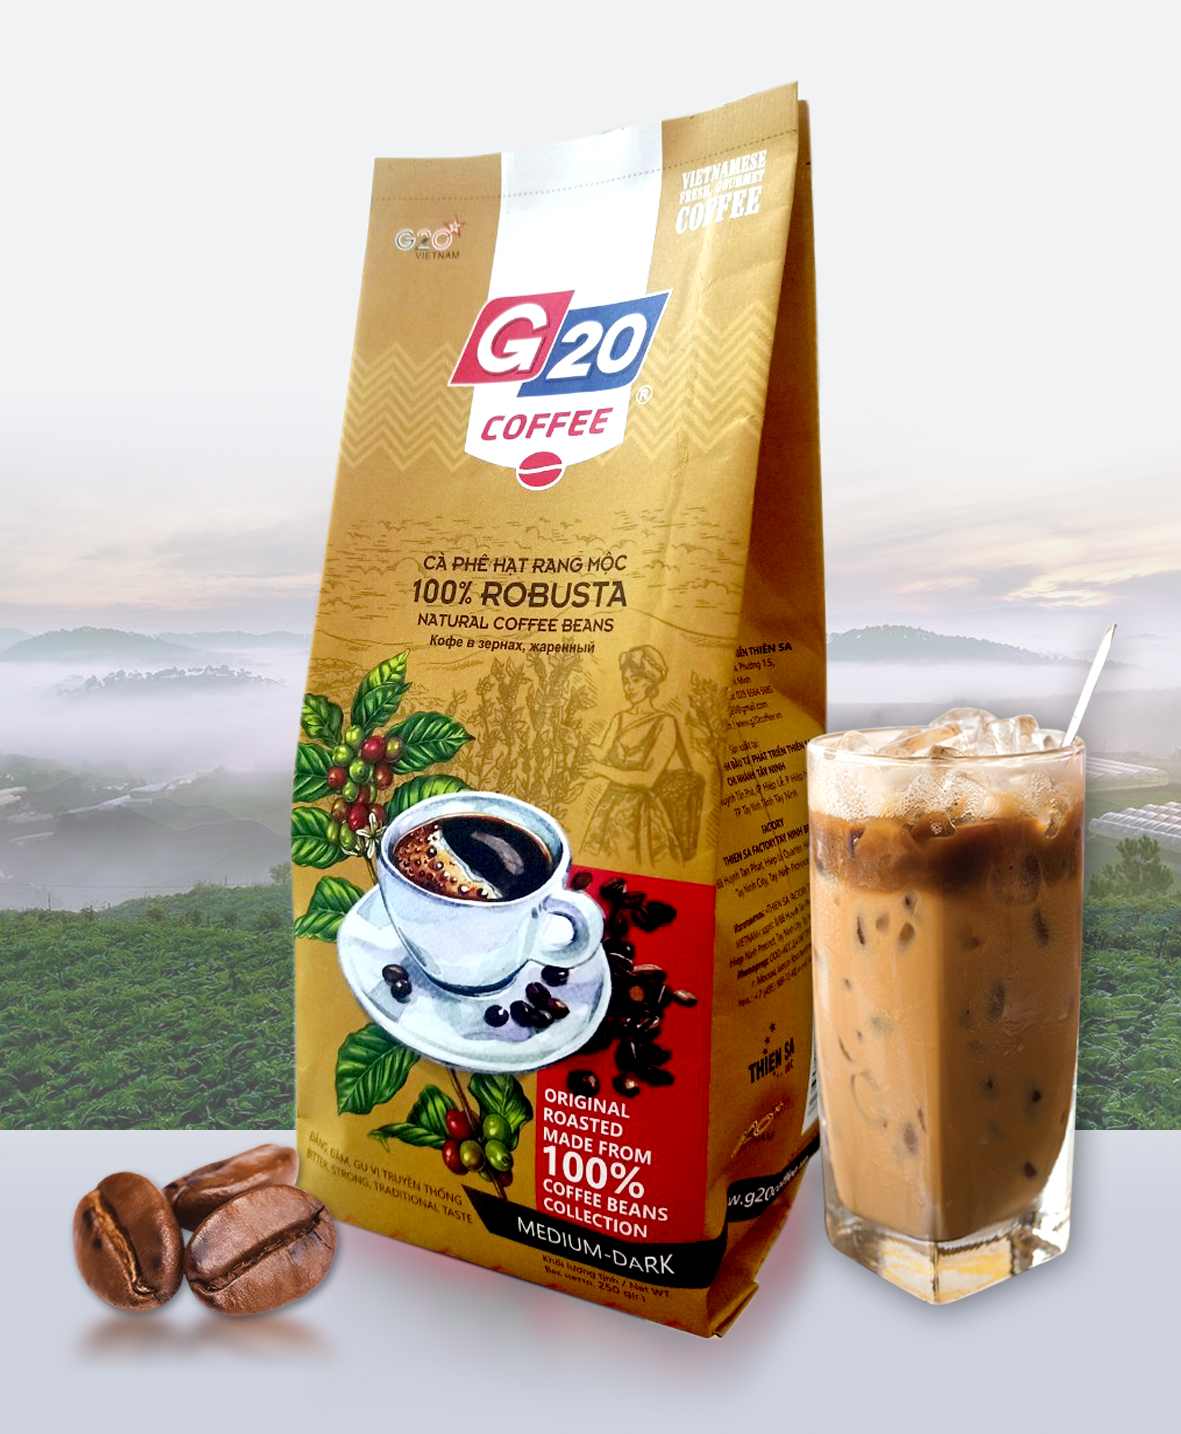 https://g20coffee.vn/en